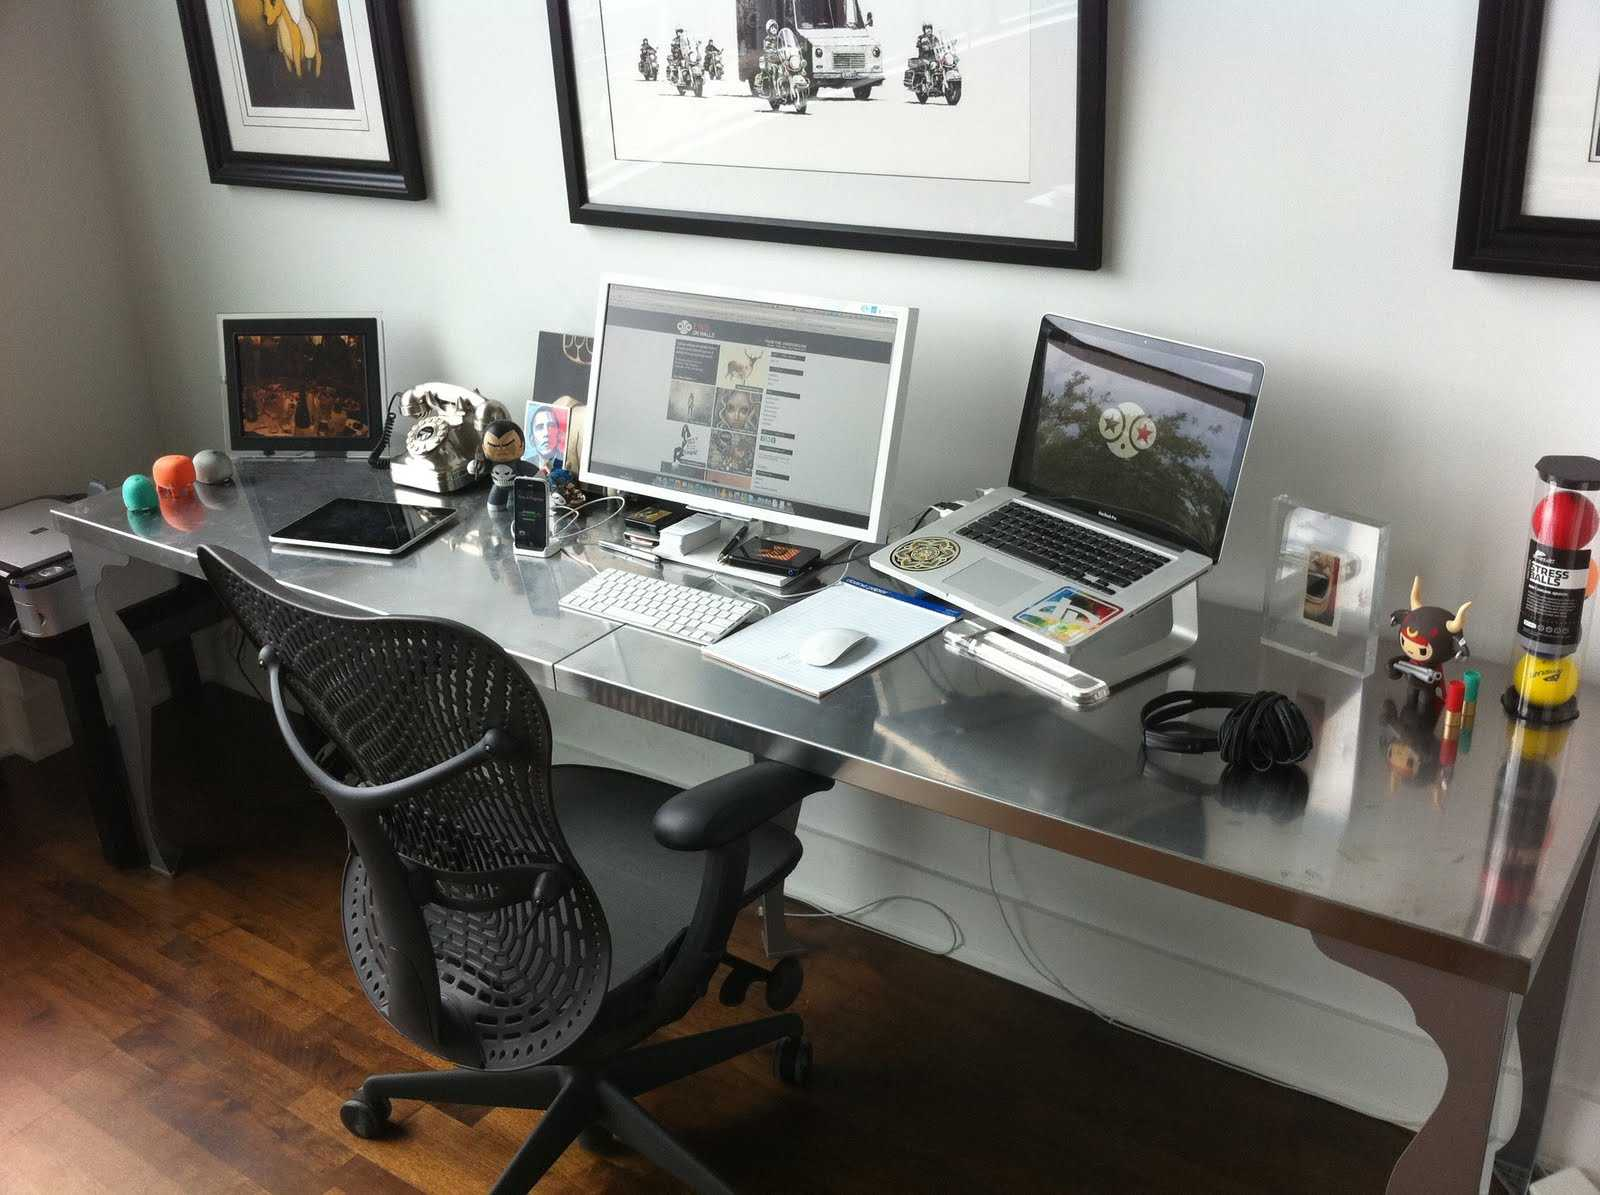 pictures for home office. How To Set Up An Effective Home Office_4144_news Pictures For Office